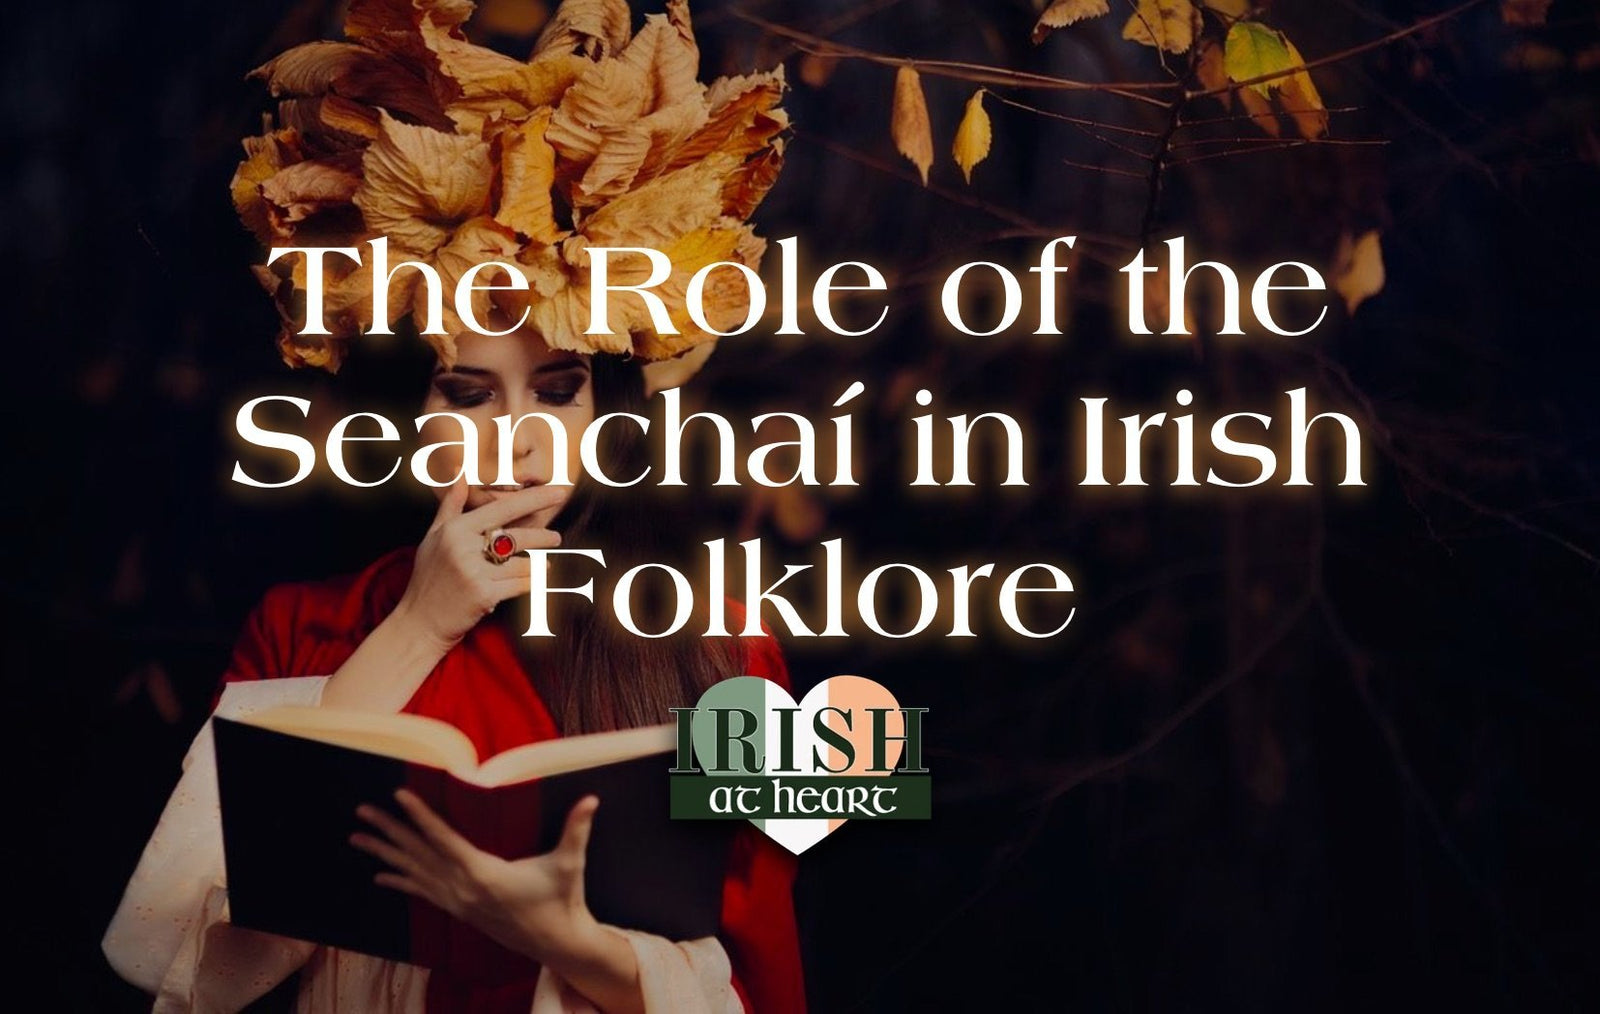 The Role of the Seanchaí in Irish Folklore